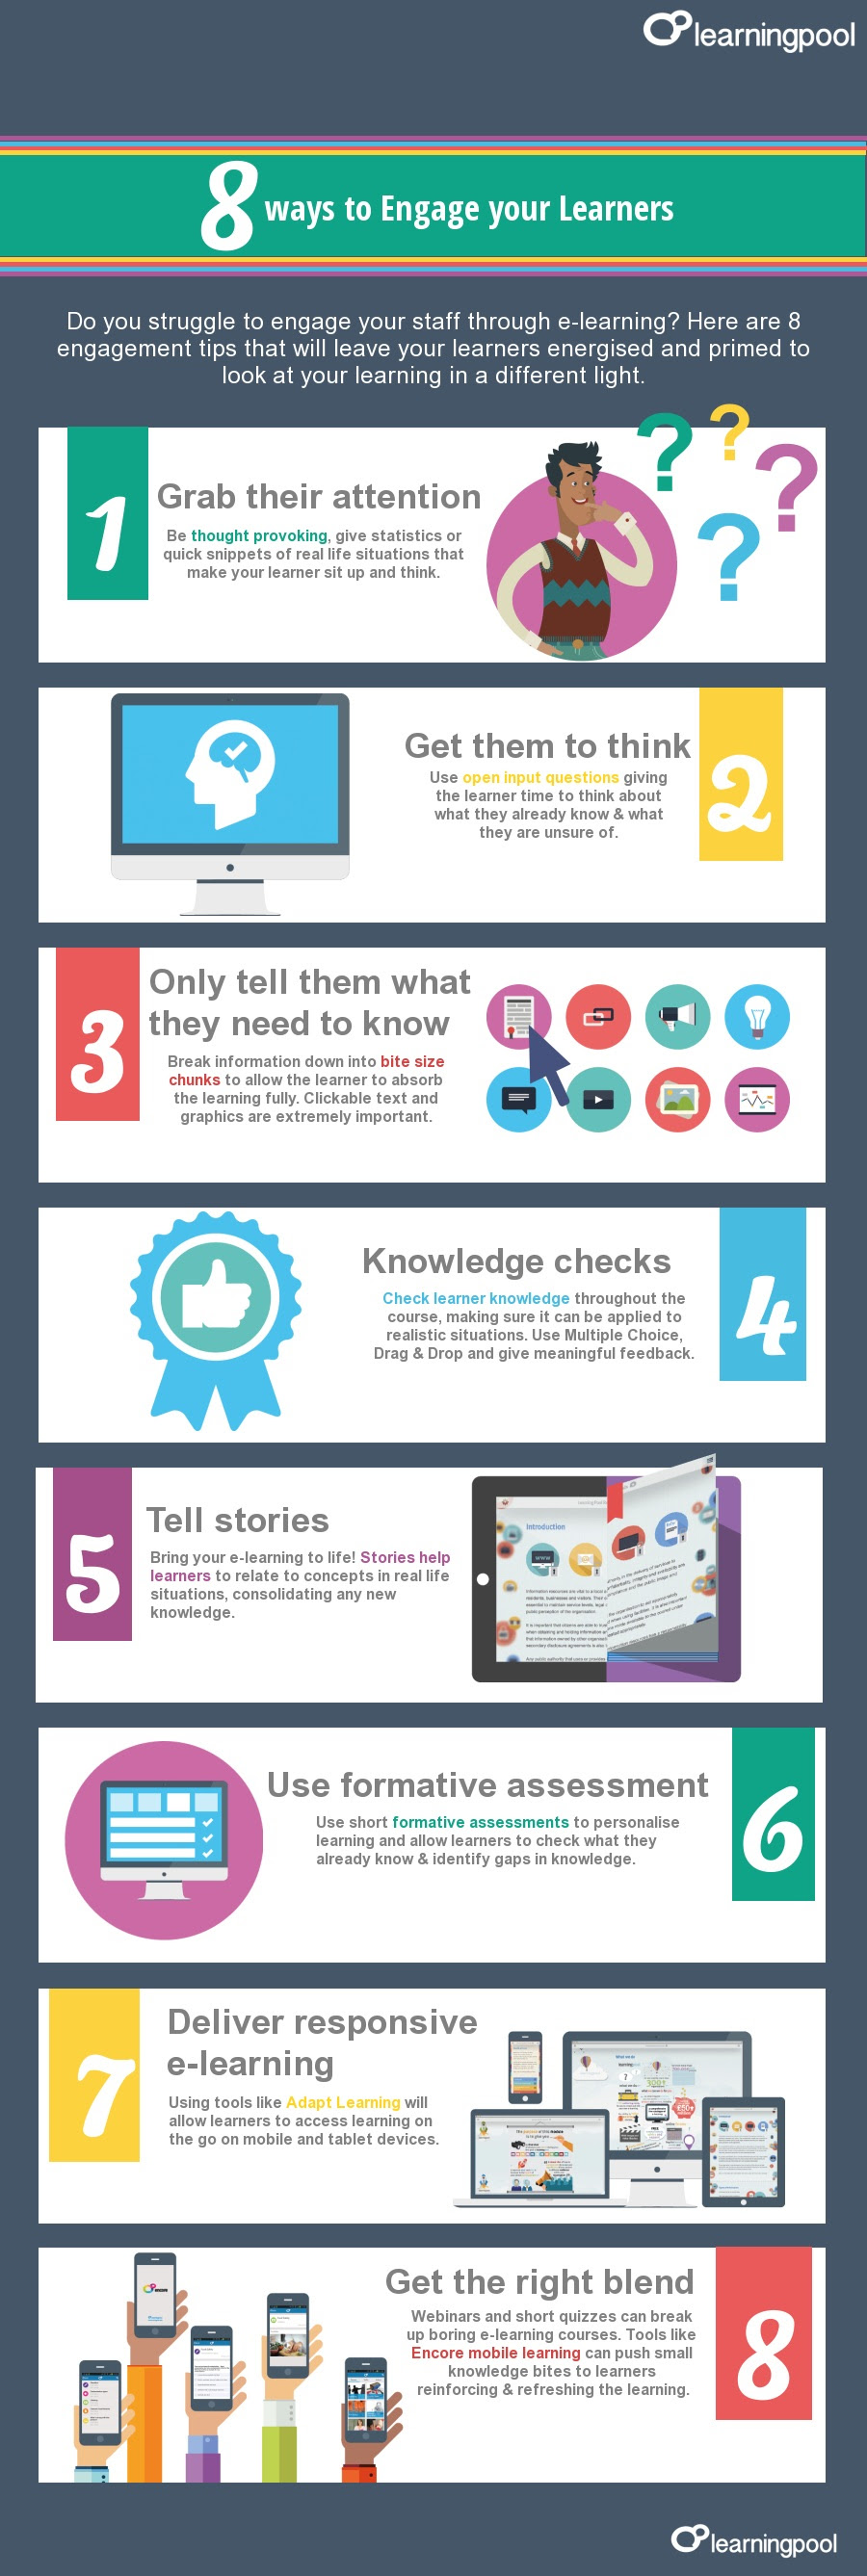 Tips to engage students